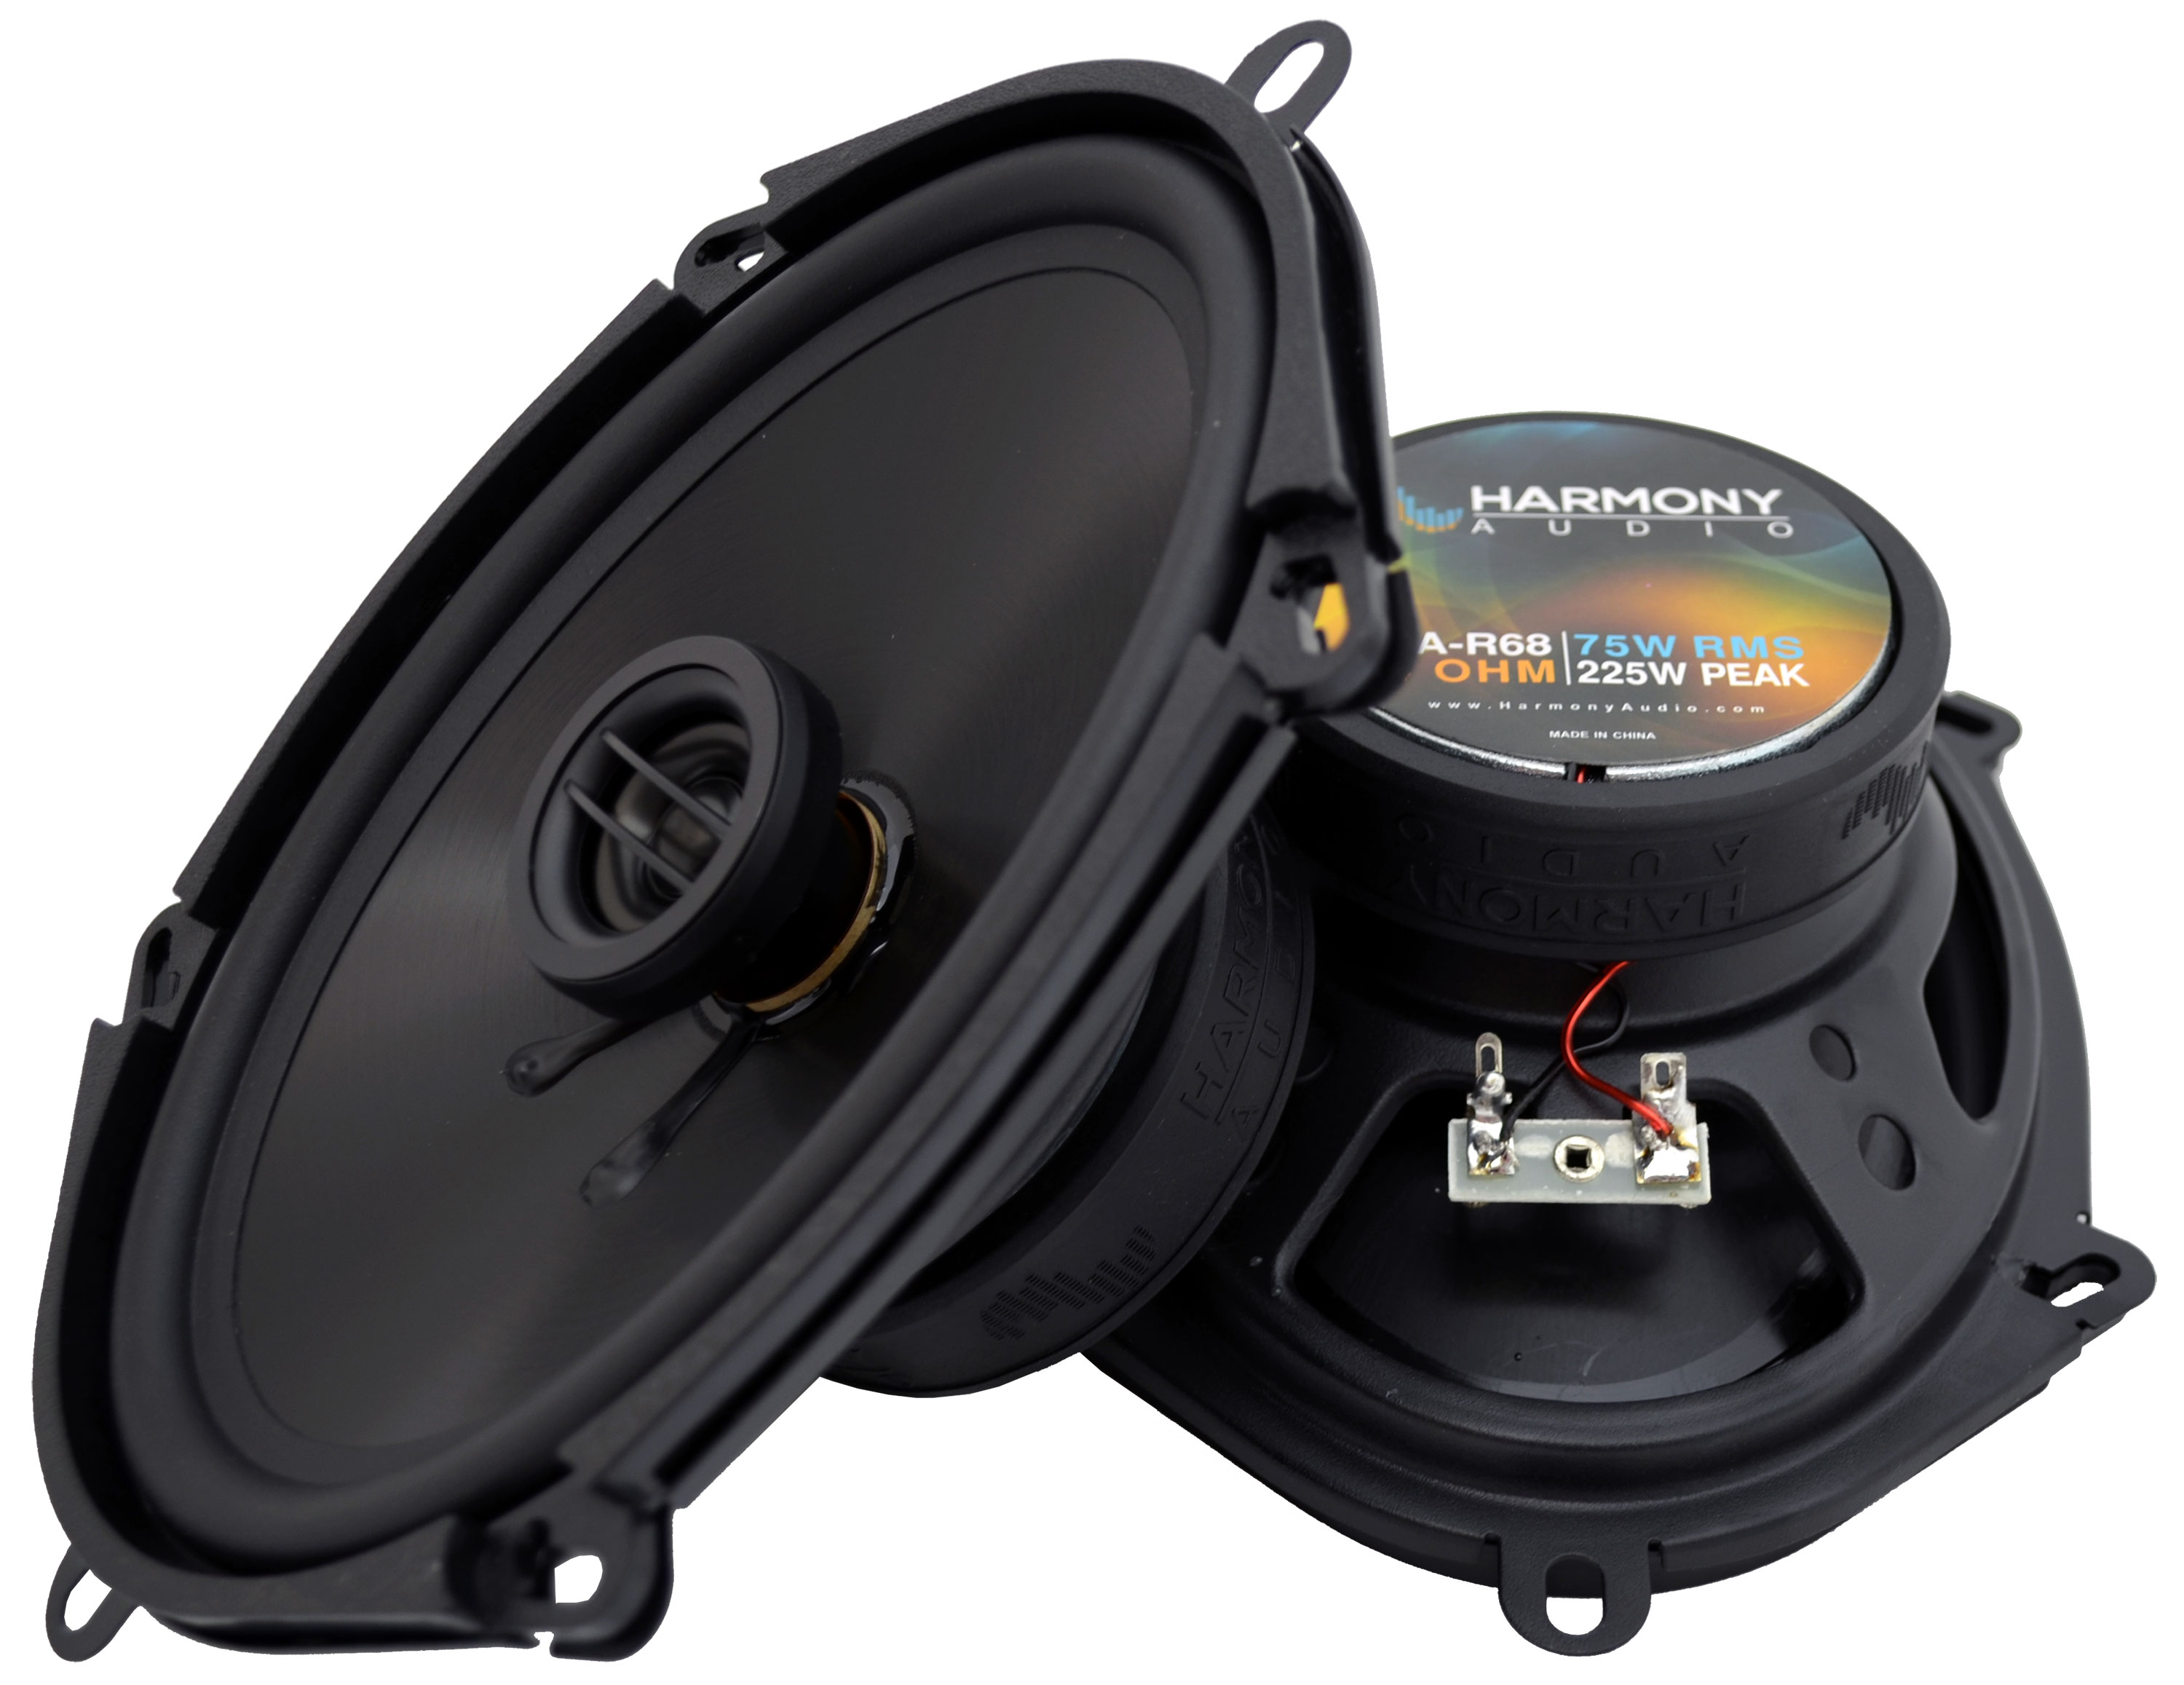 Fits BMW M3 1995-1999 Rear Deck Replacement Speaker Harmony HA-R68 Speakers New